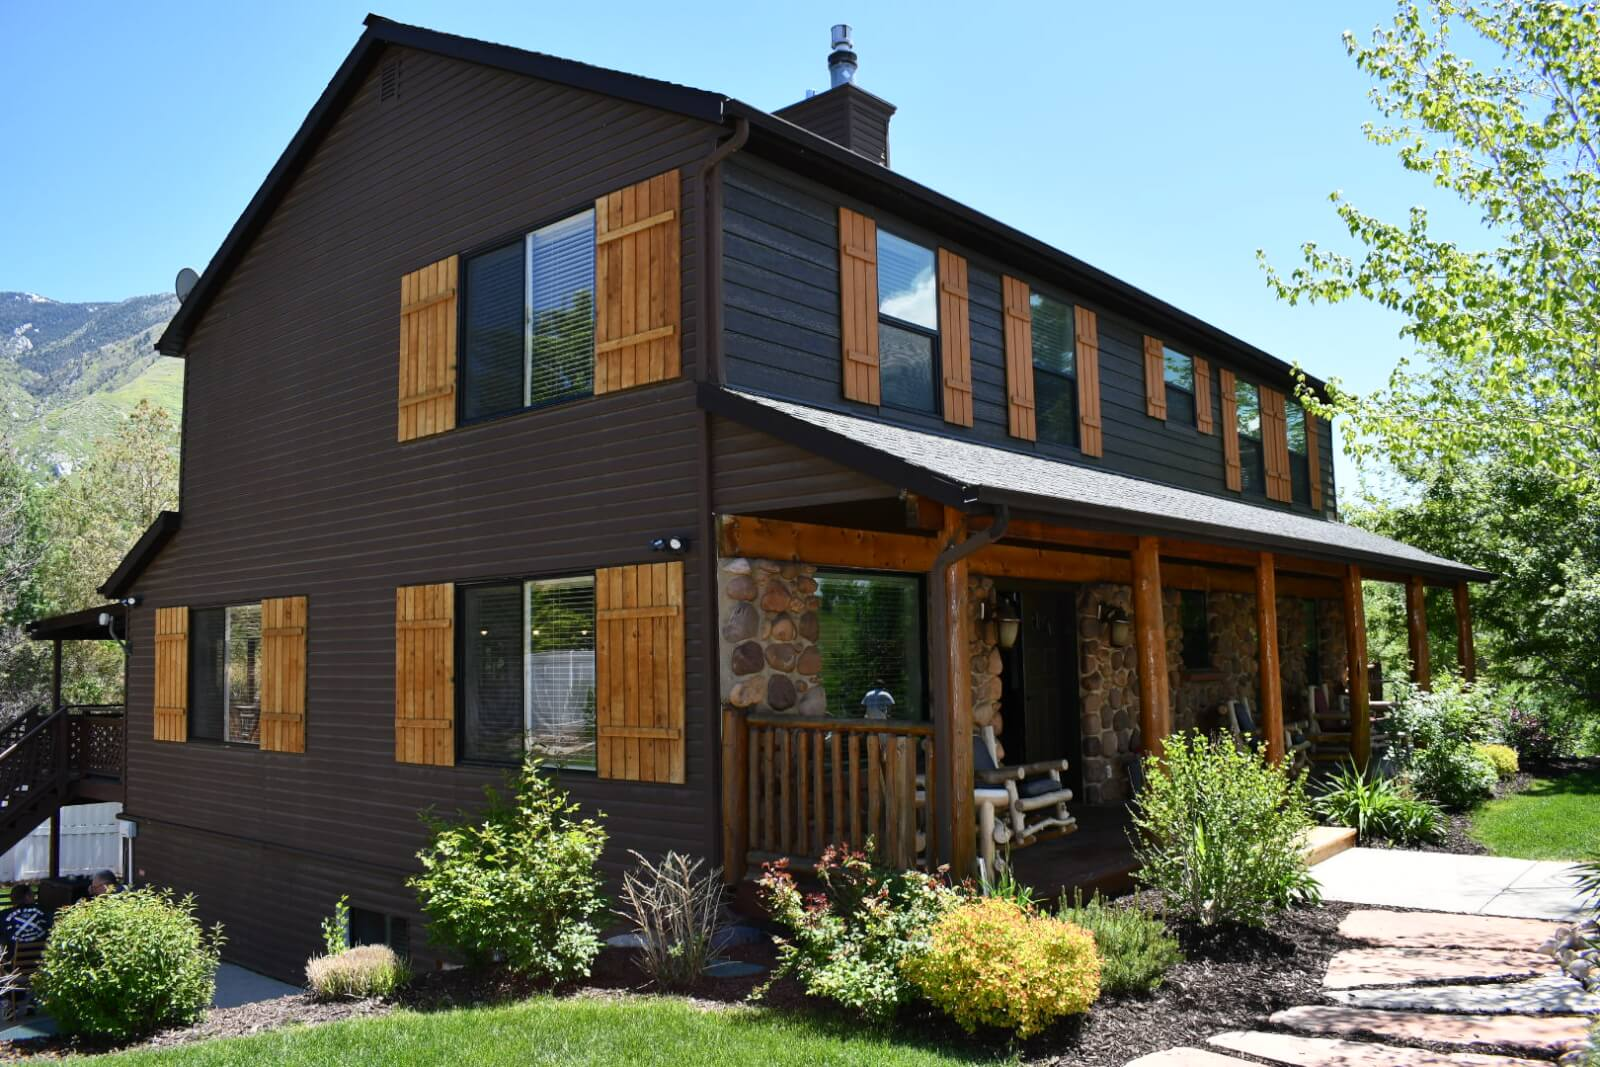 Thumbnail of Deer Hollow Recovery & Wellness